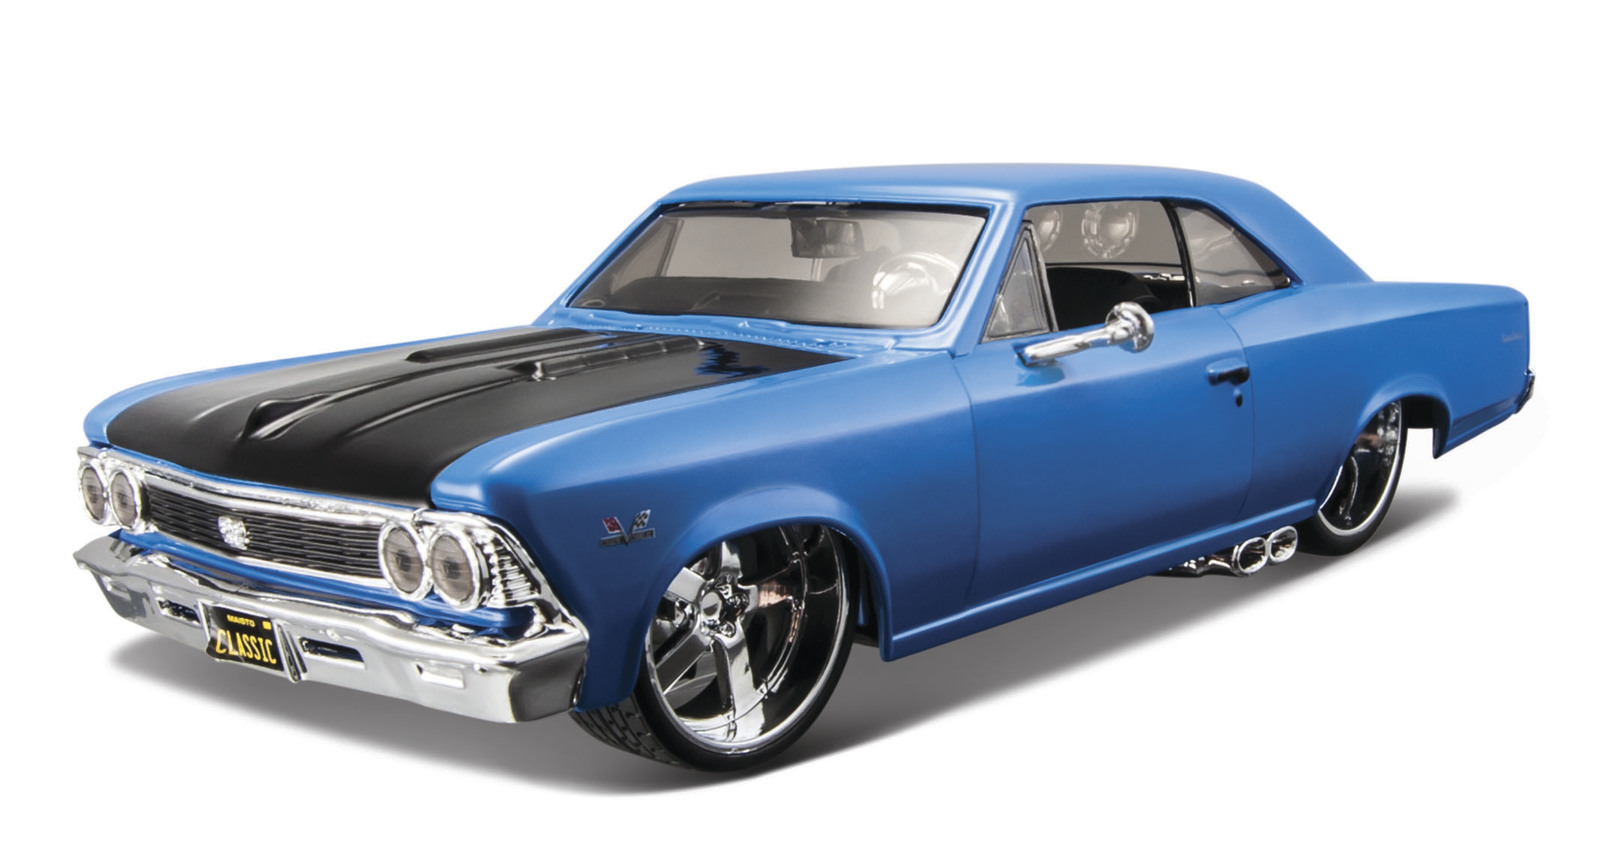 Maisto Design 1966 Chevrolet Chevelle Ss 396 Blue Toy At Mighty 124 Diecast Vehicle Image